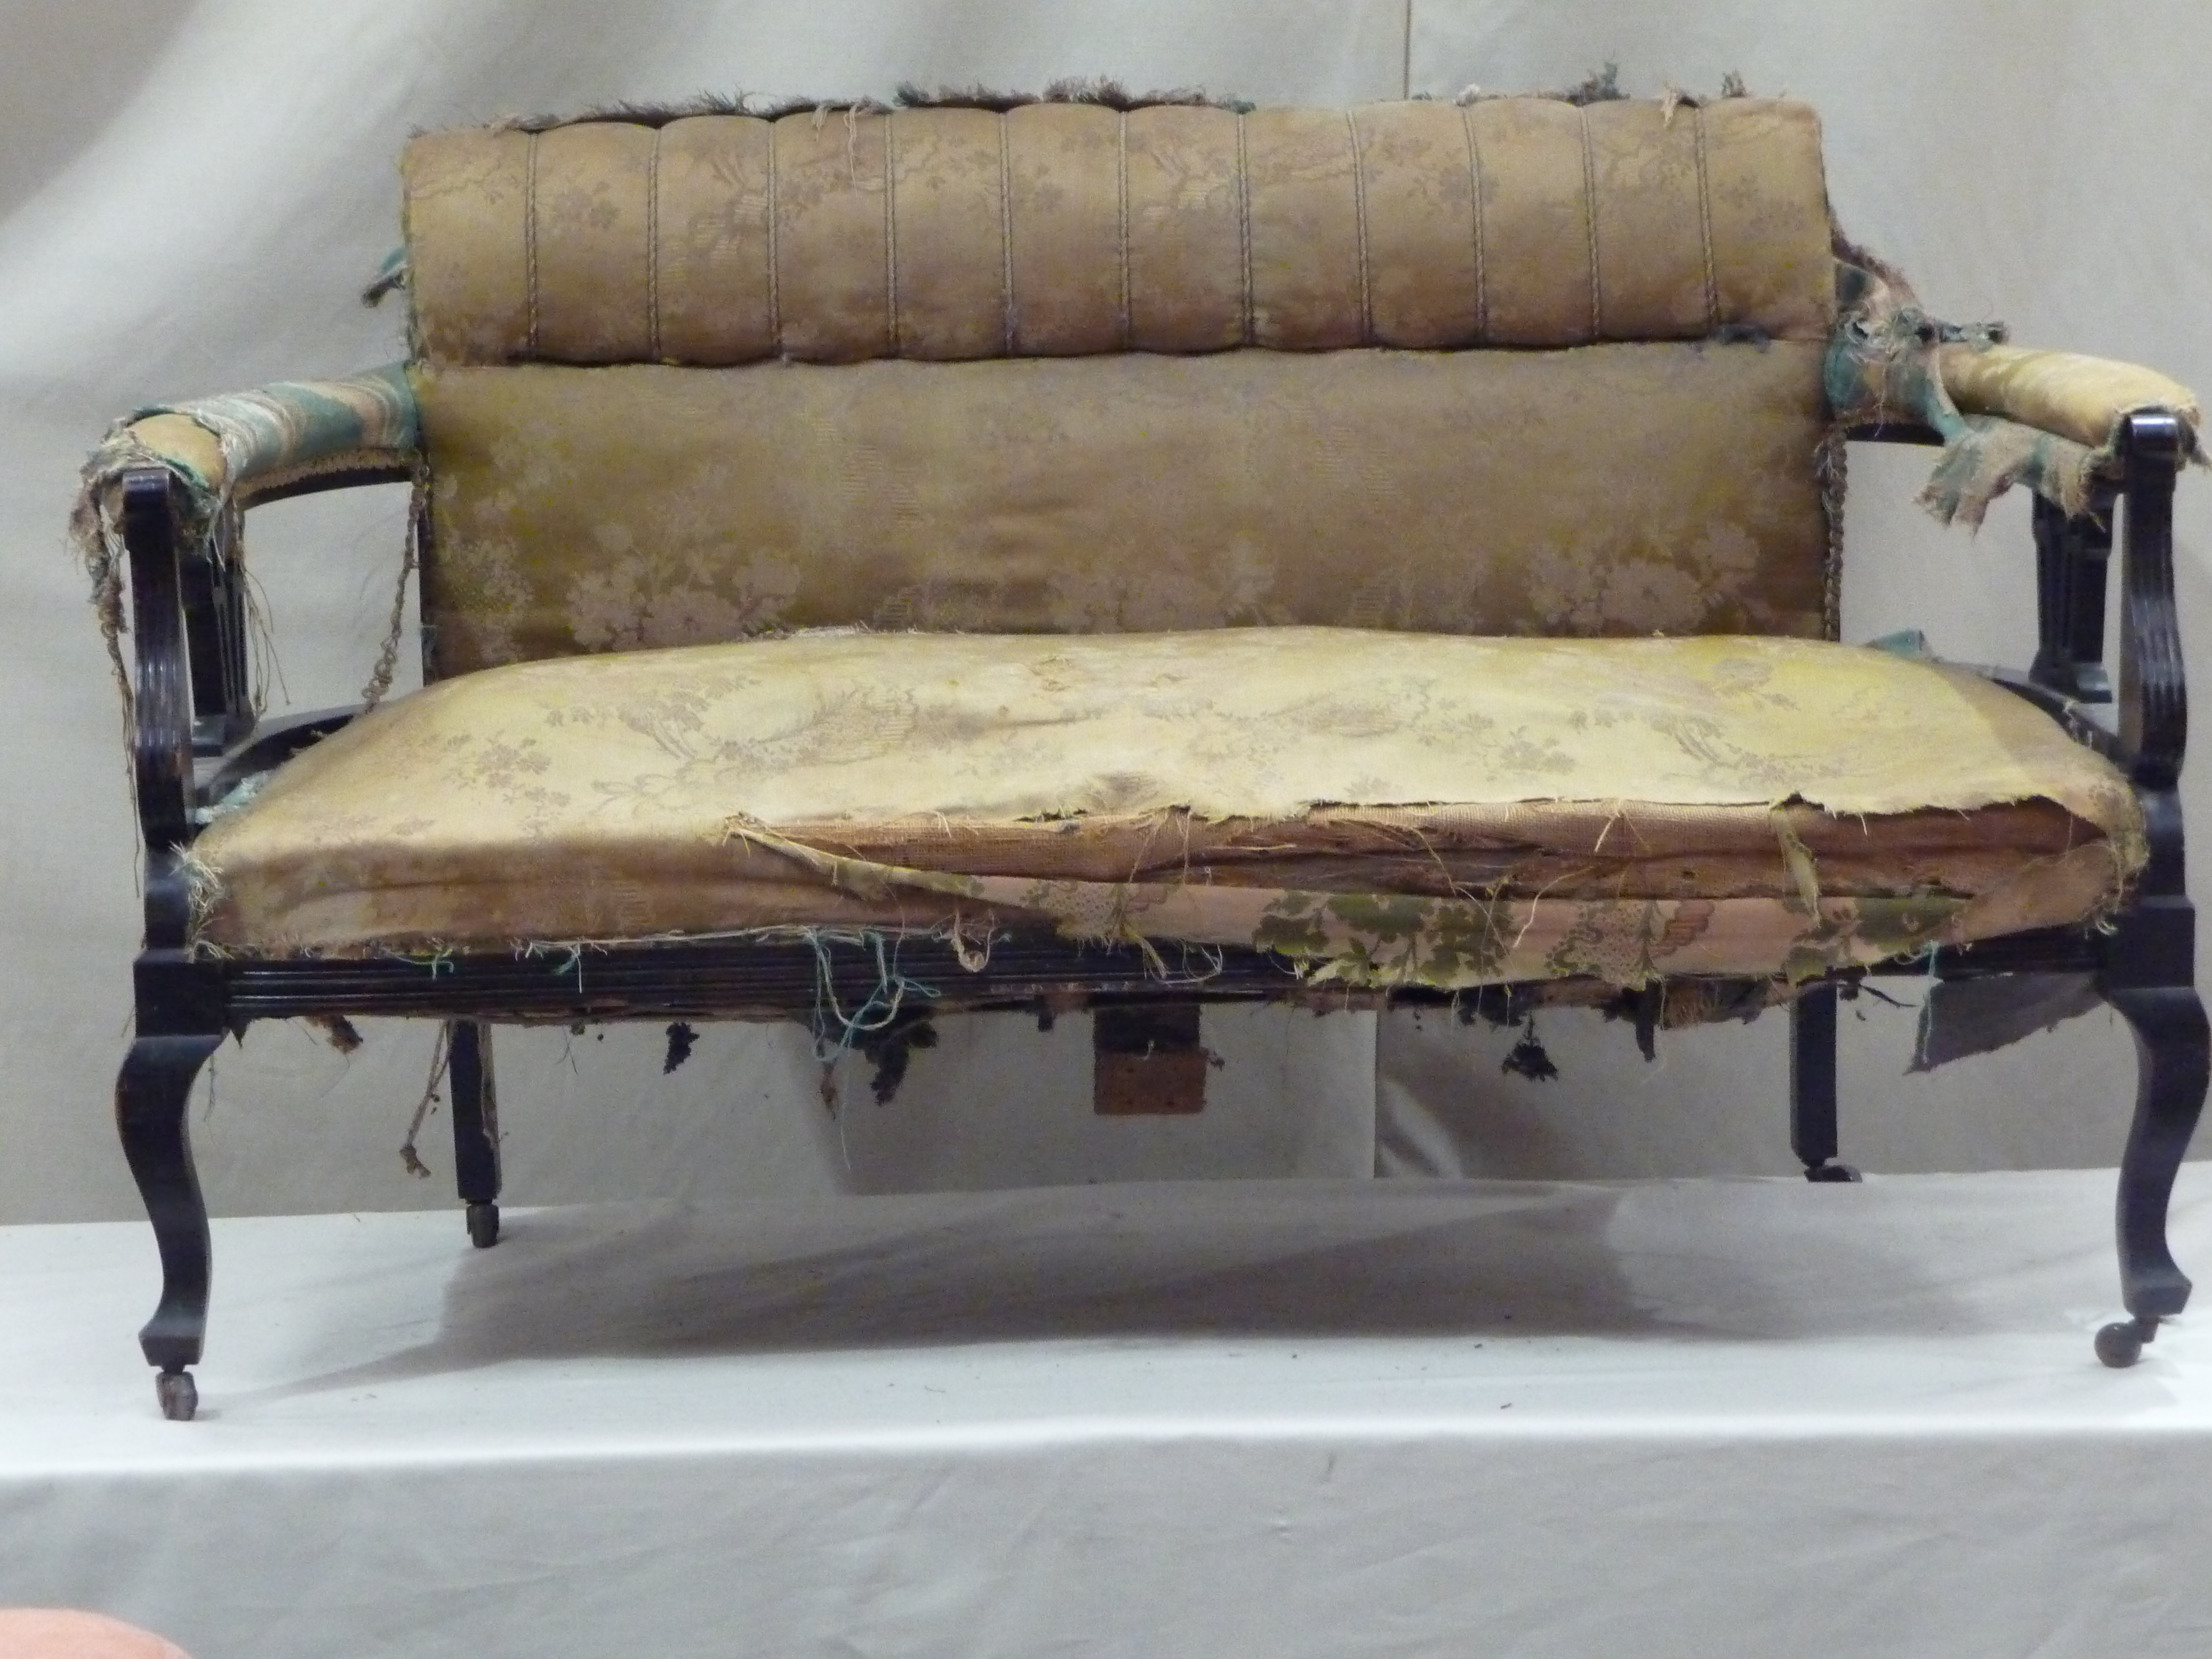 Superieur Upholstery You Can Trust Old Fabric Victorian Style Sofa Upholstery With  Black Wood Frame Ideas ...